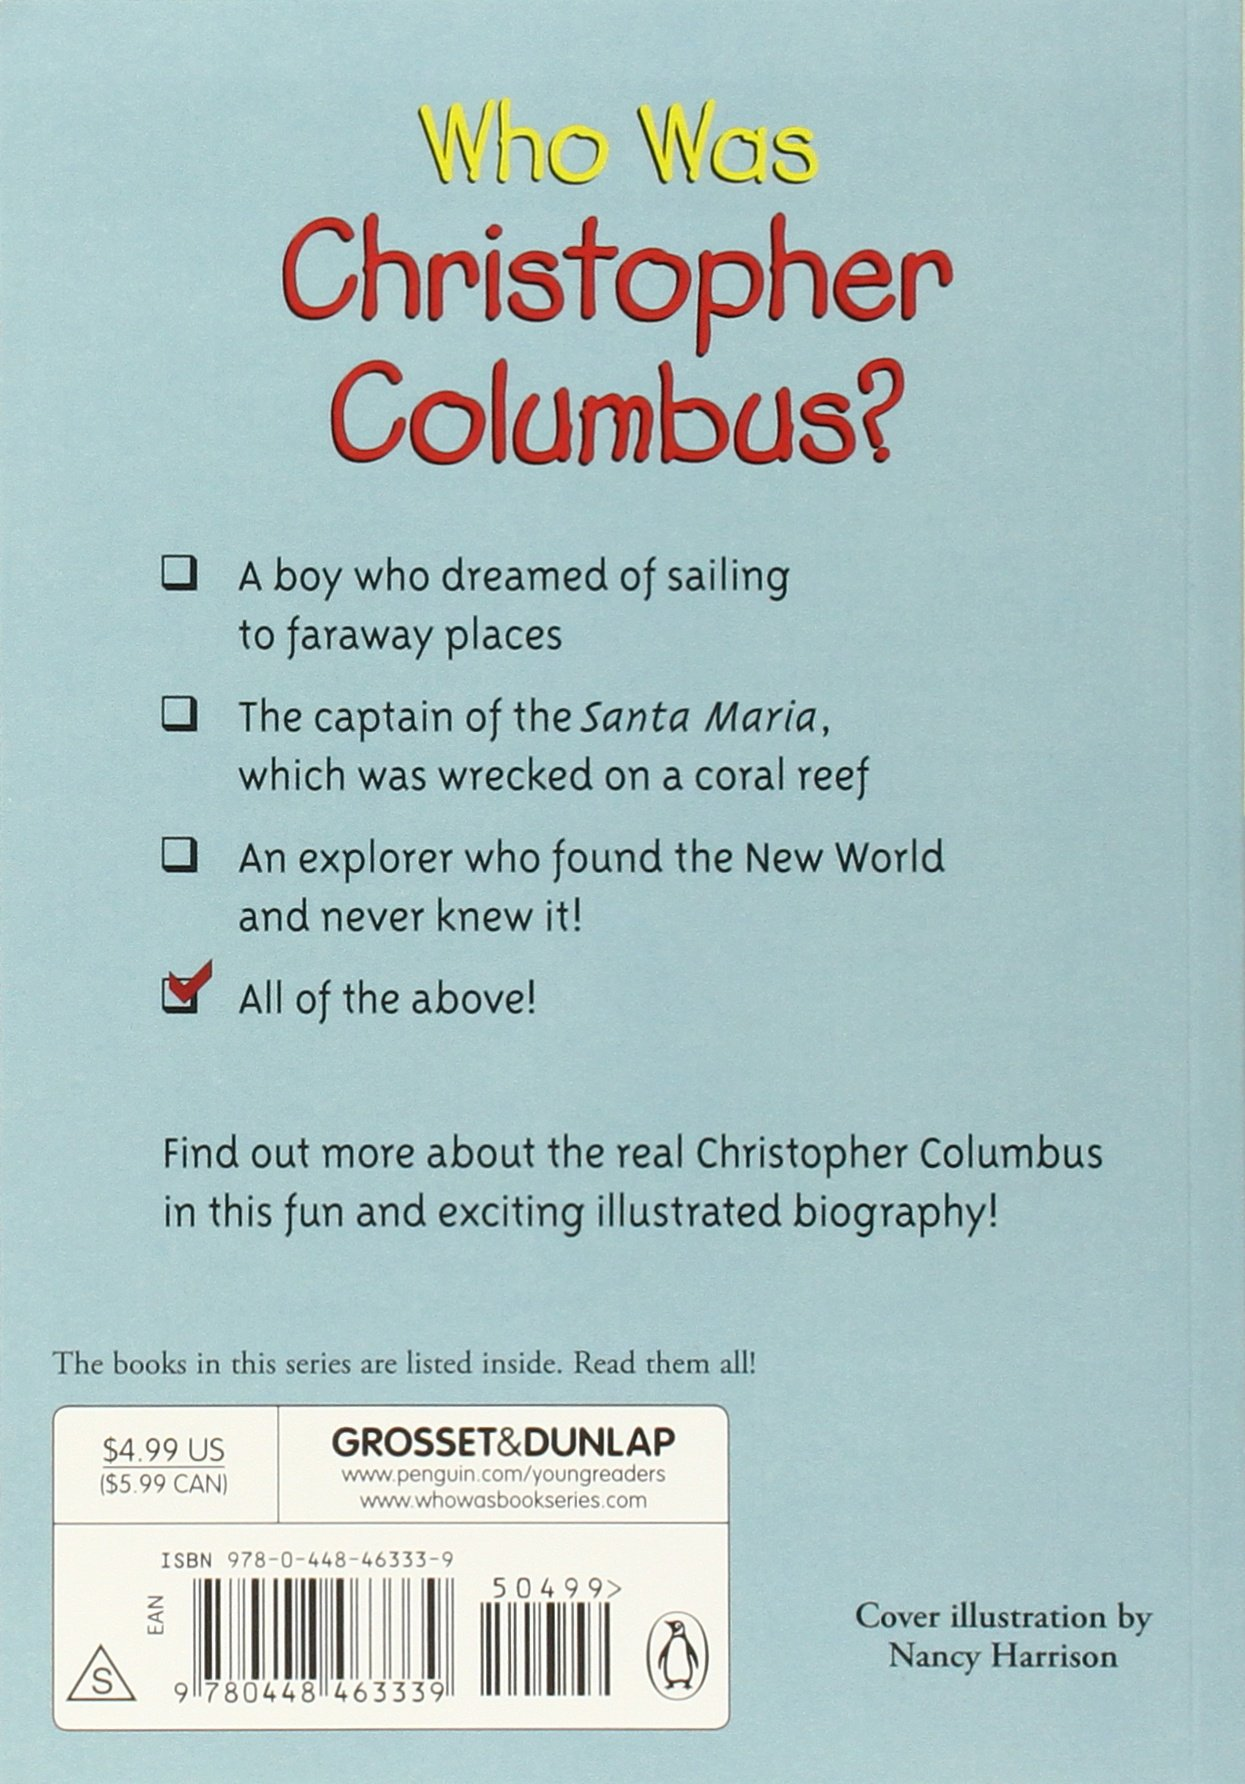 a descriptive summary on the life of christopher columbus In 1451 ad christopher columbus was born in the city of genoa in italy from his childhood, he was influenced by reading the travelogue of marco polo and other writings concerning sea voyage.